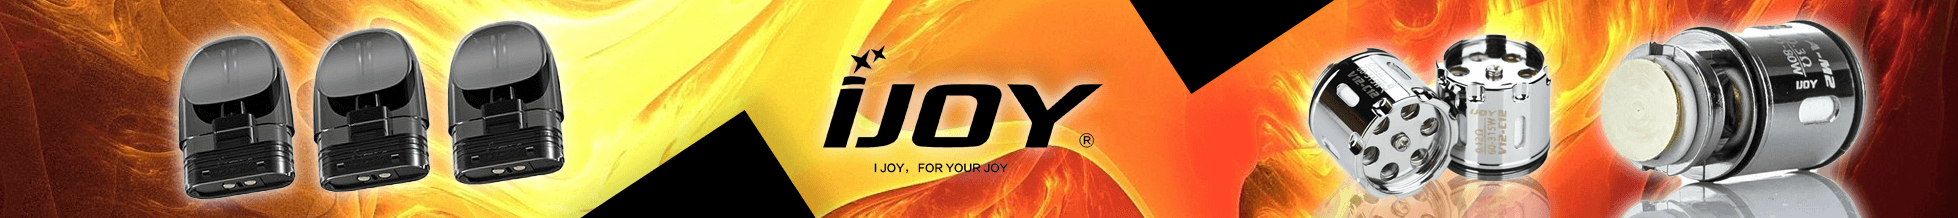 ijoy-category-banner.png